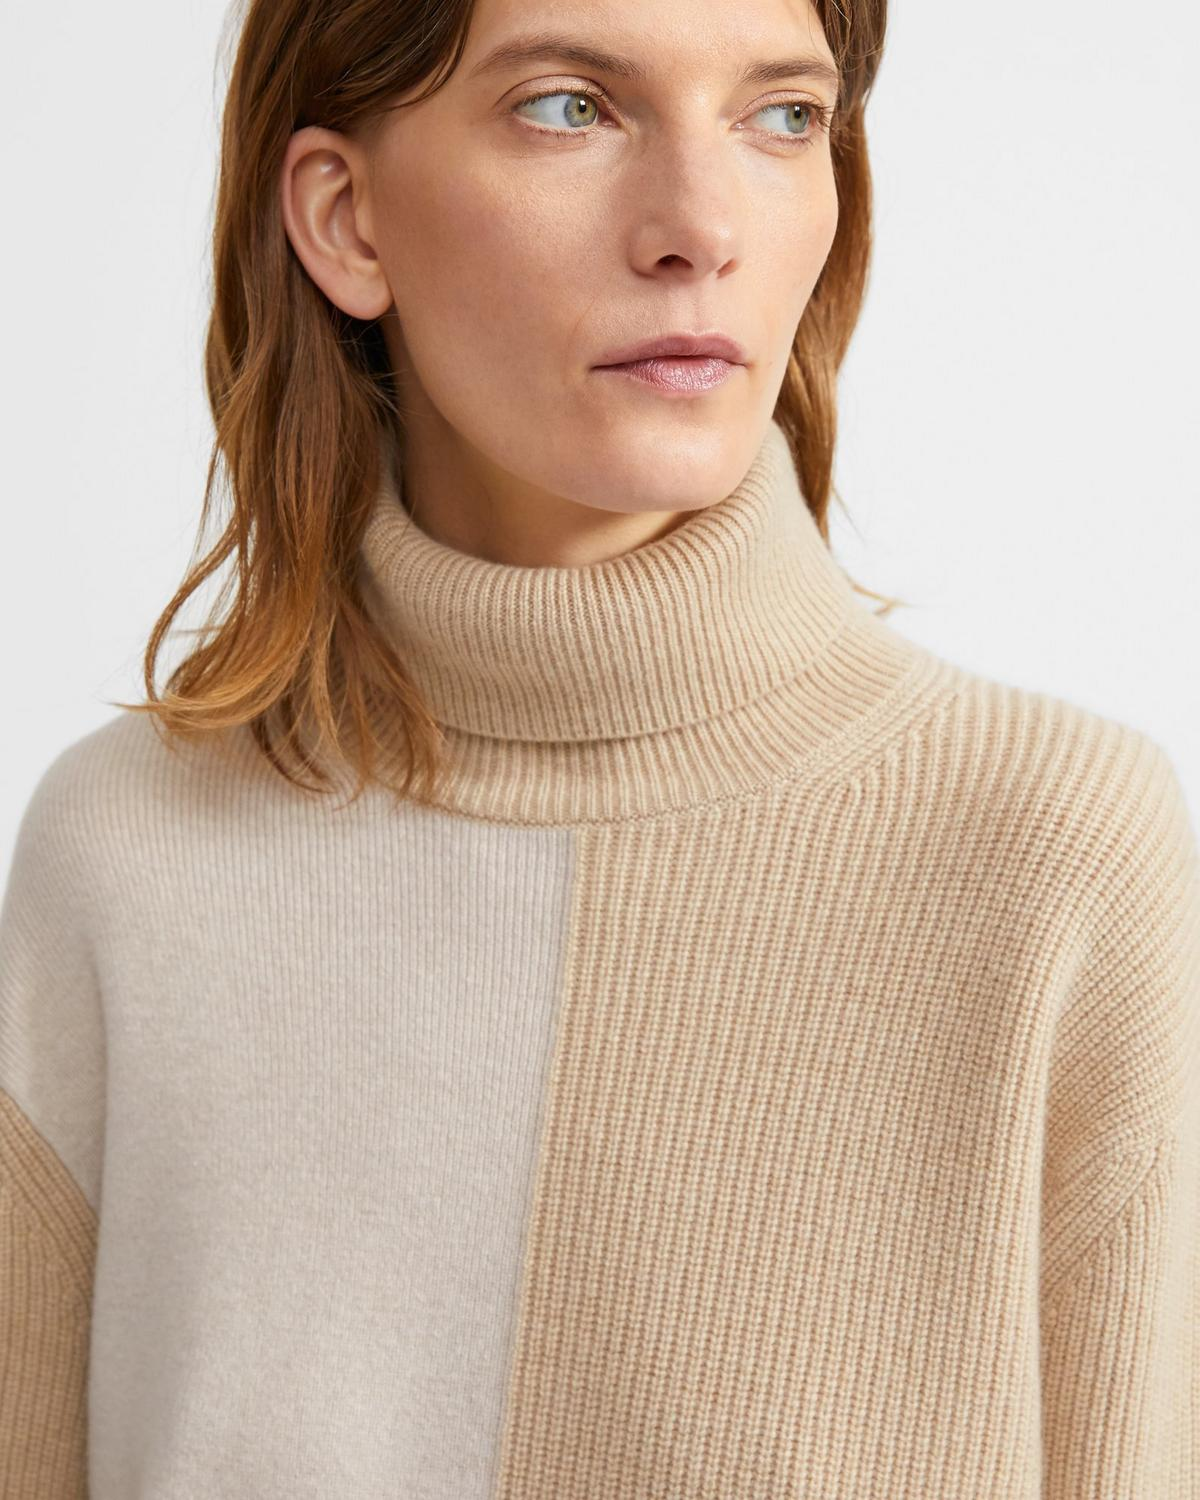 Turtleneck Sweater in Color Block Cashmere